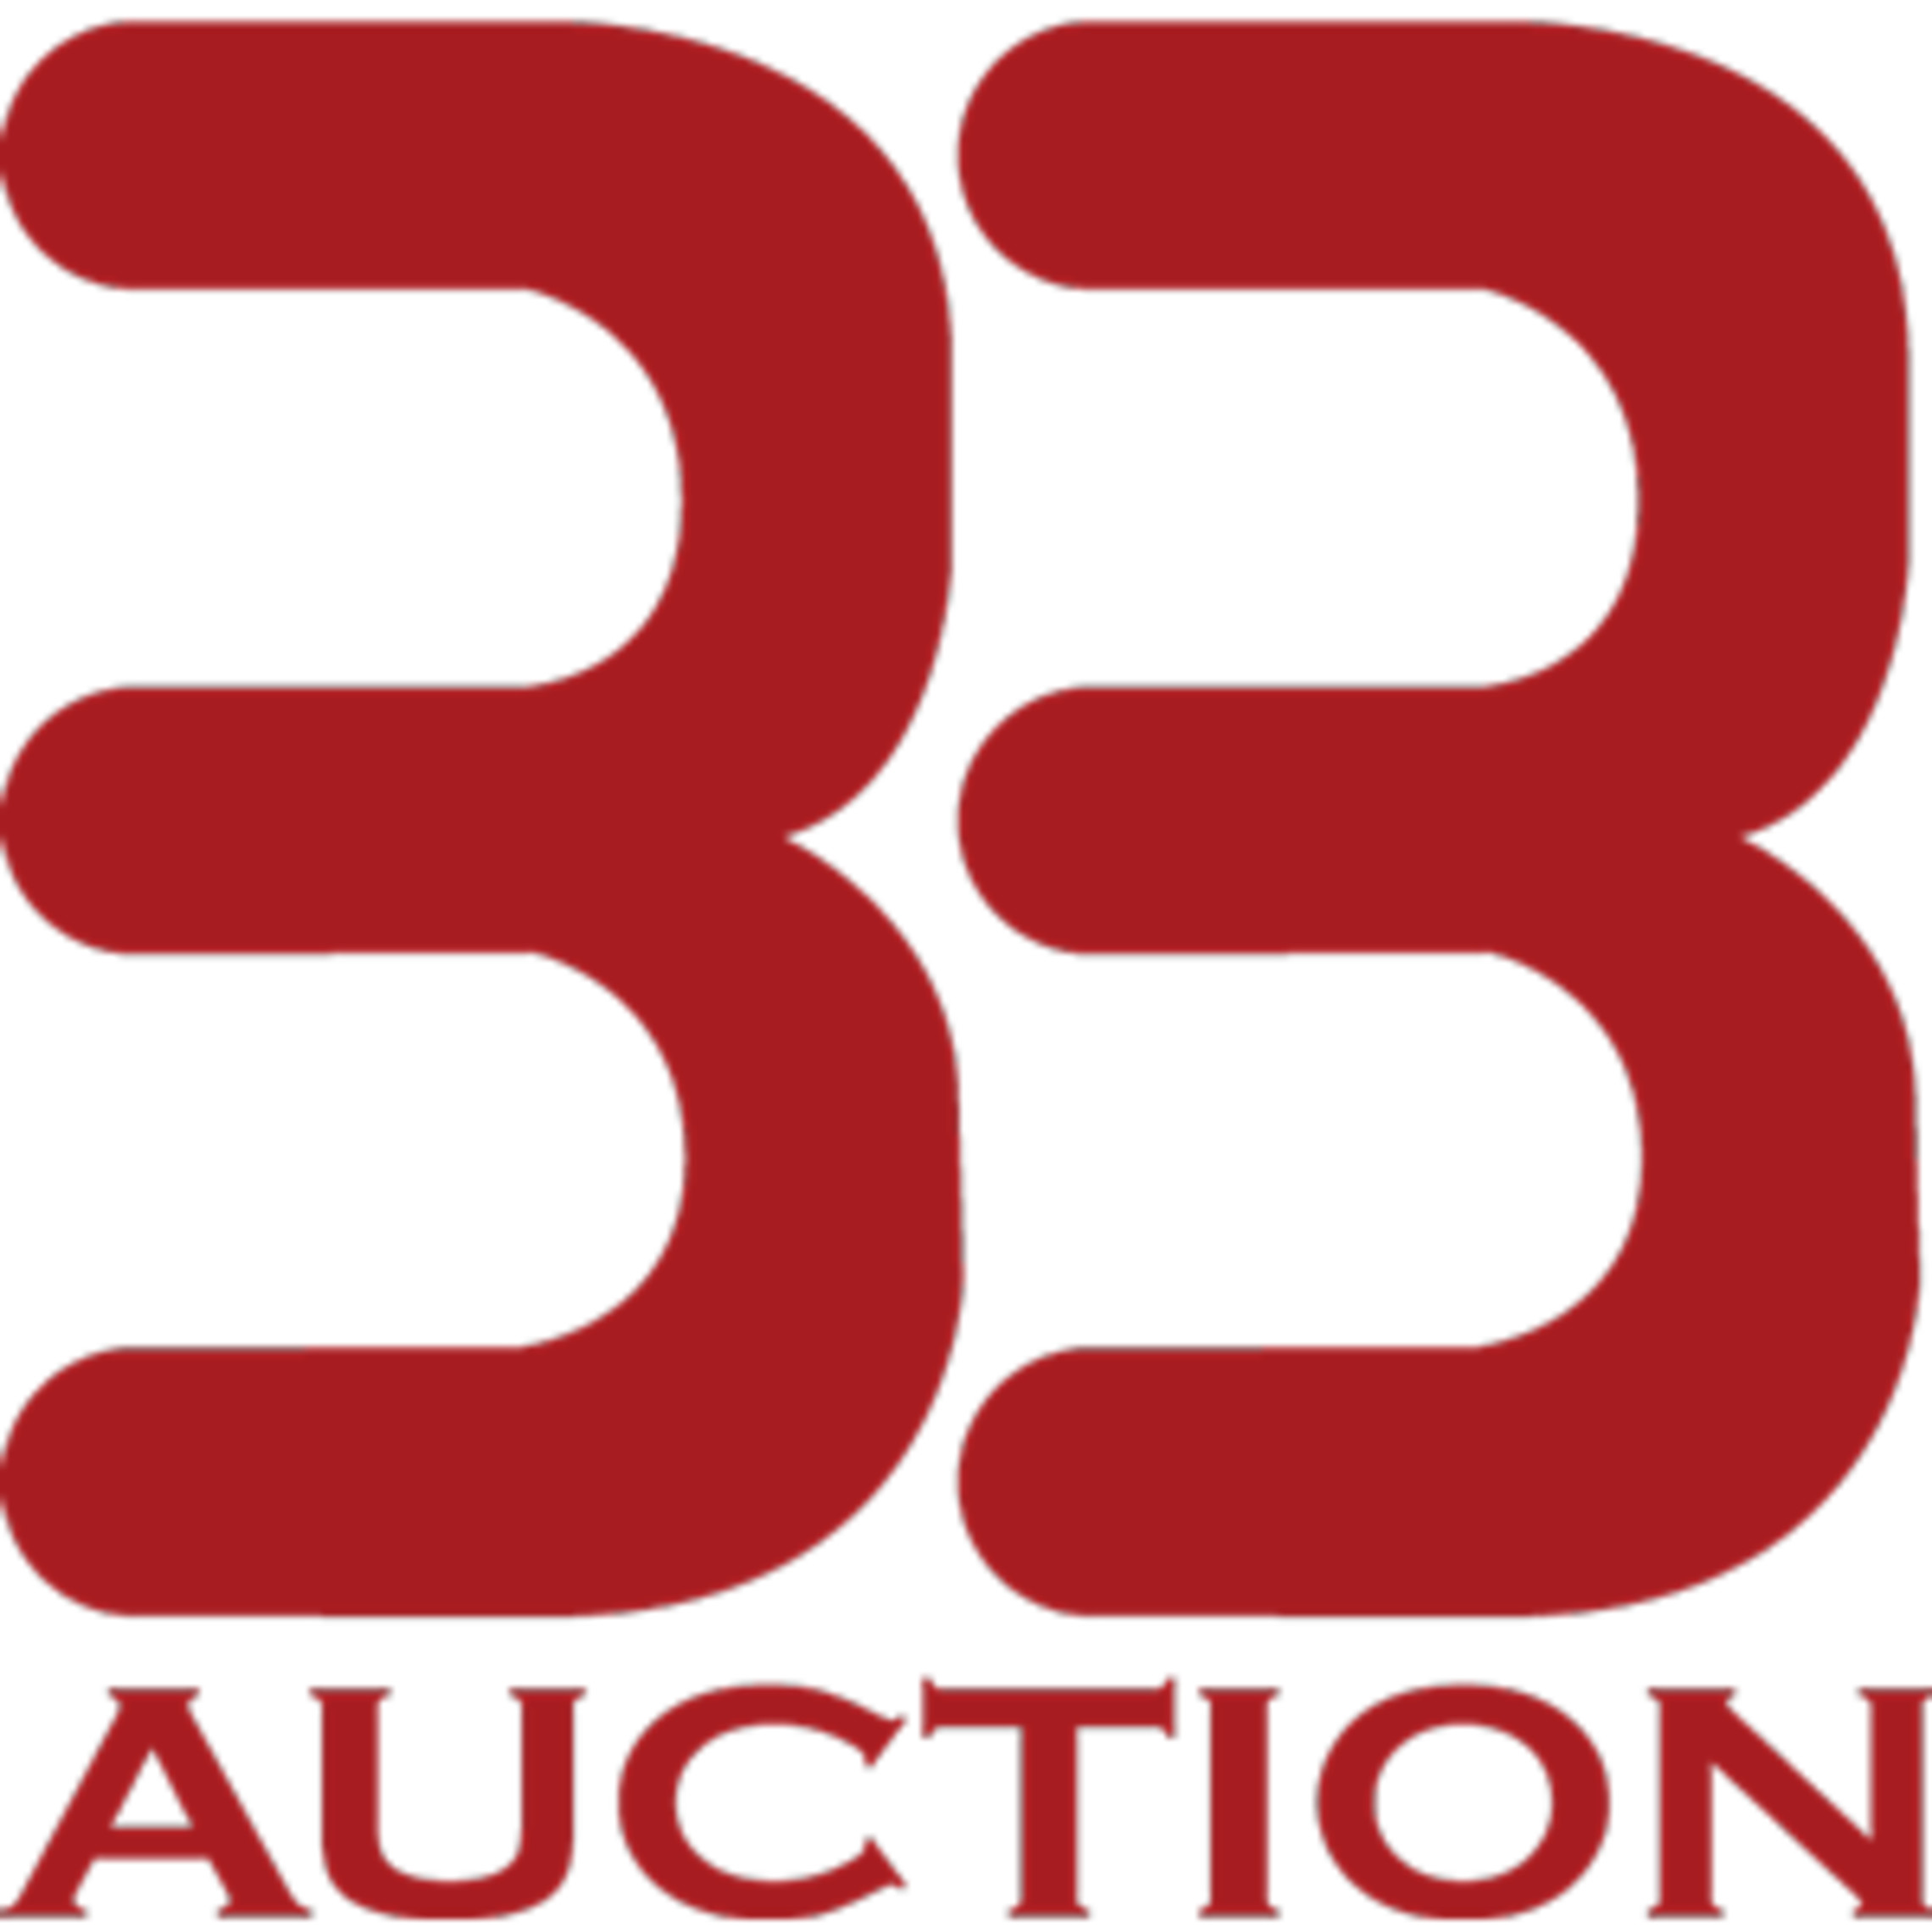 33 auction- company logo